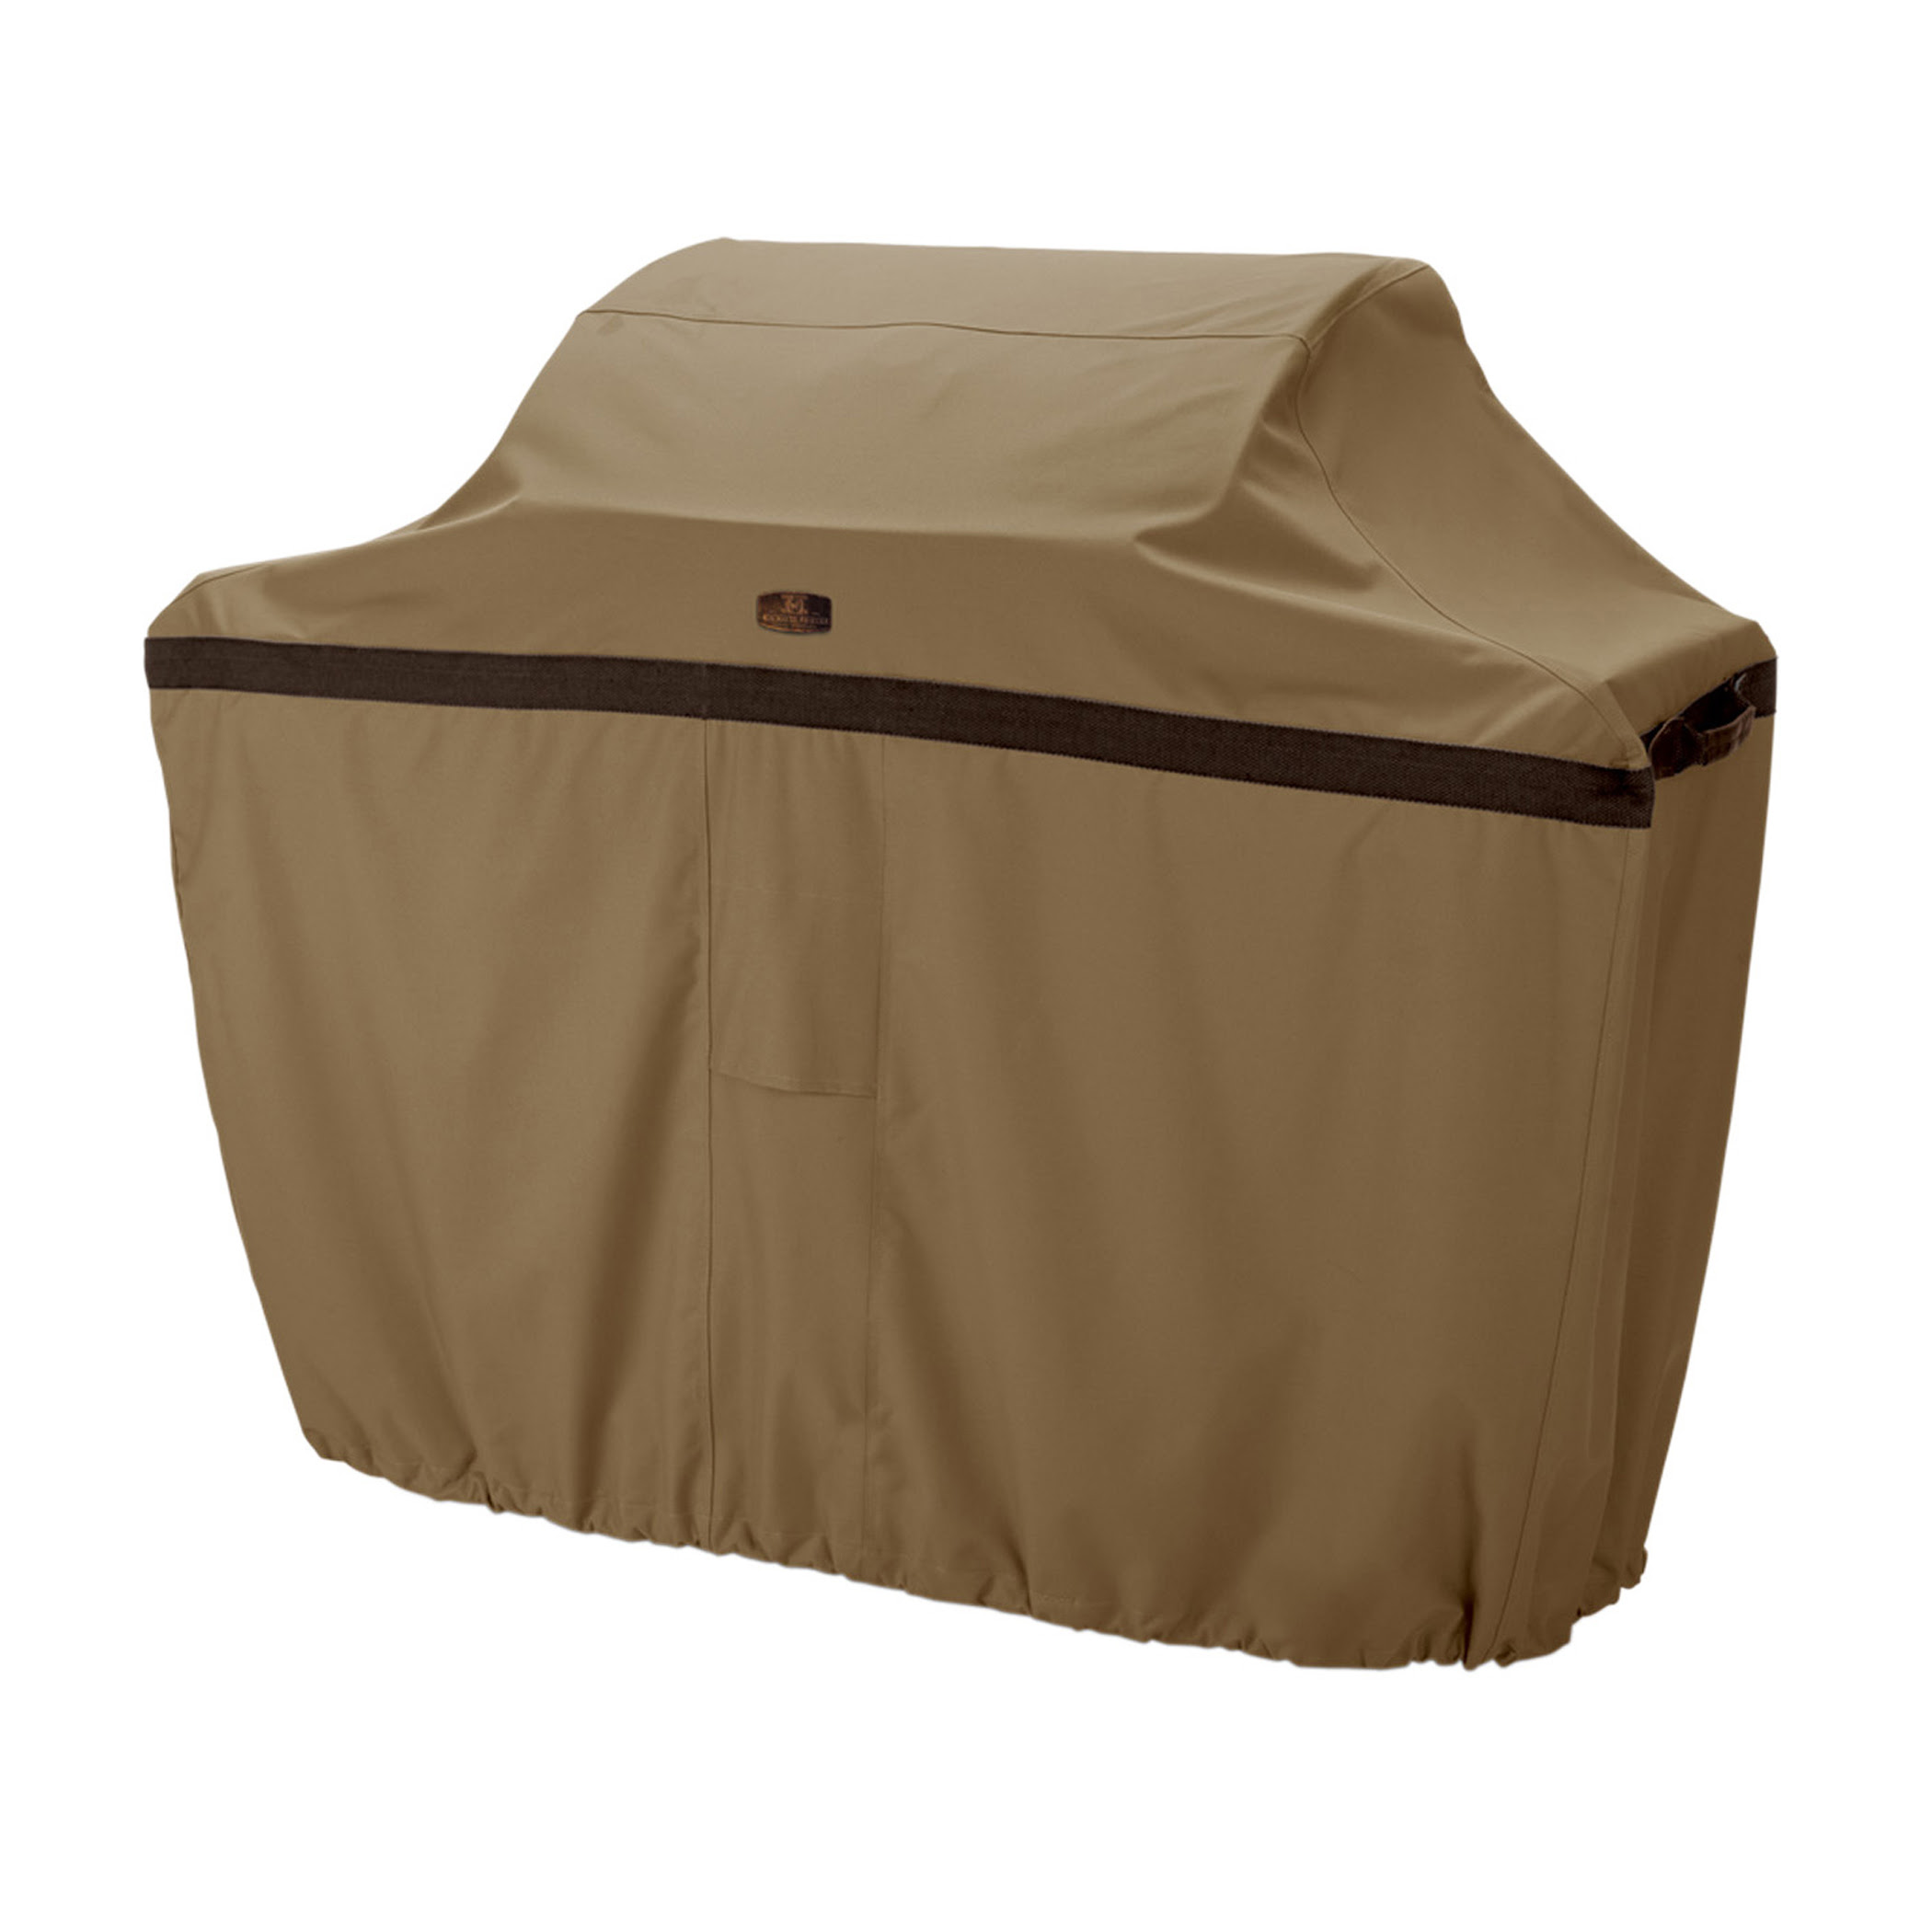 Patio Grill Cover Home Design Ideas and